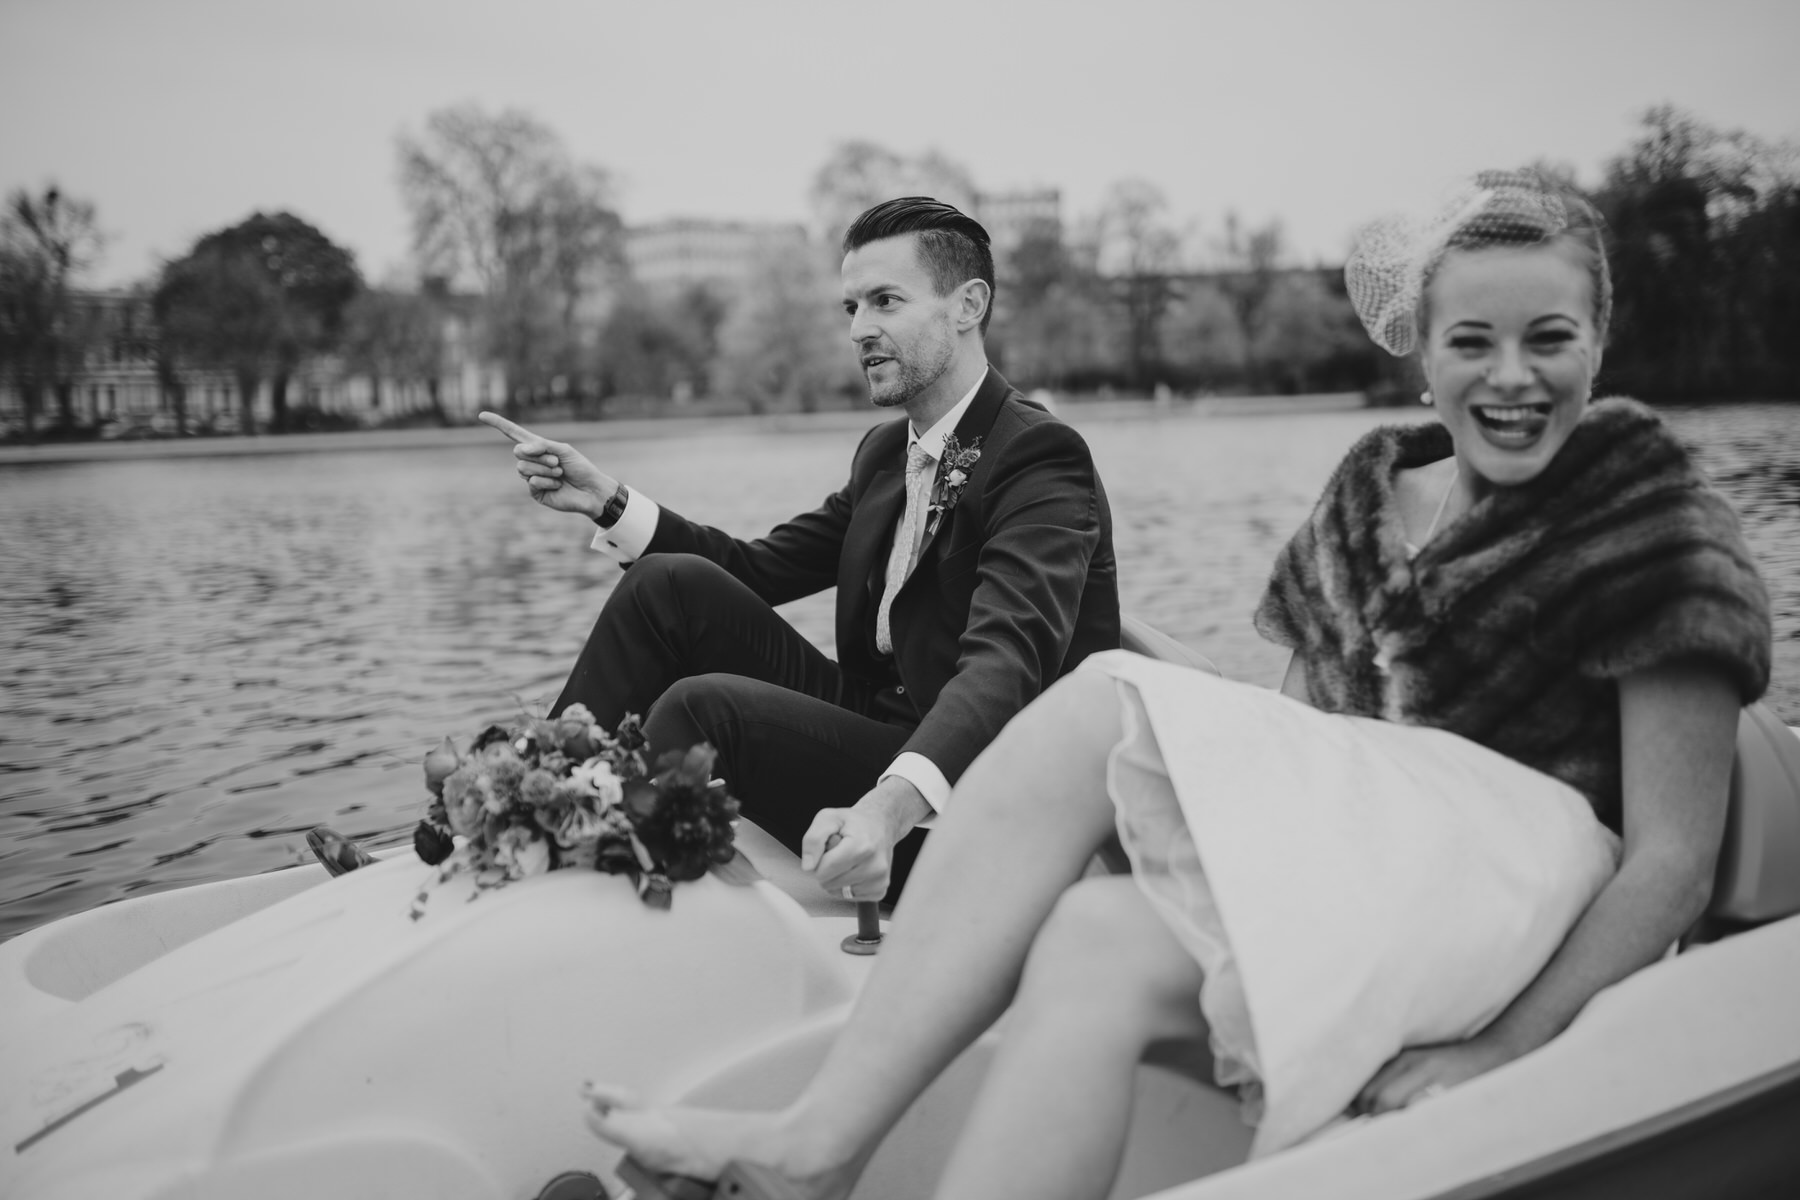 201-Victoria-park-Hackney-alternative-wedding.jpg